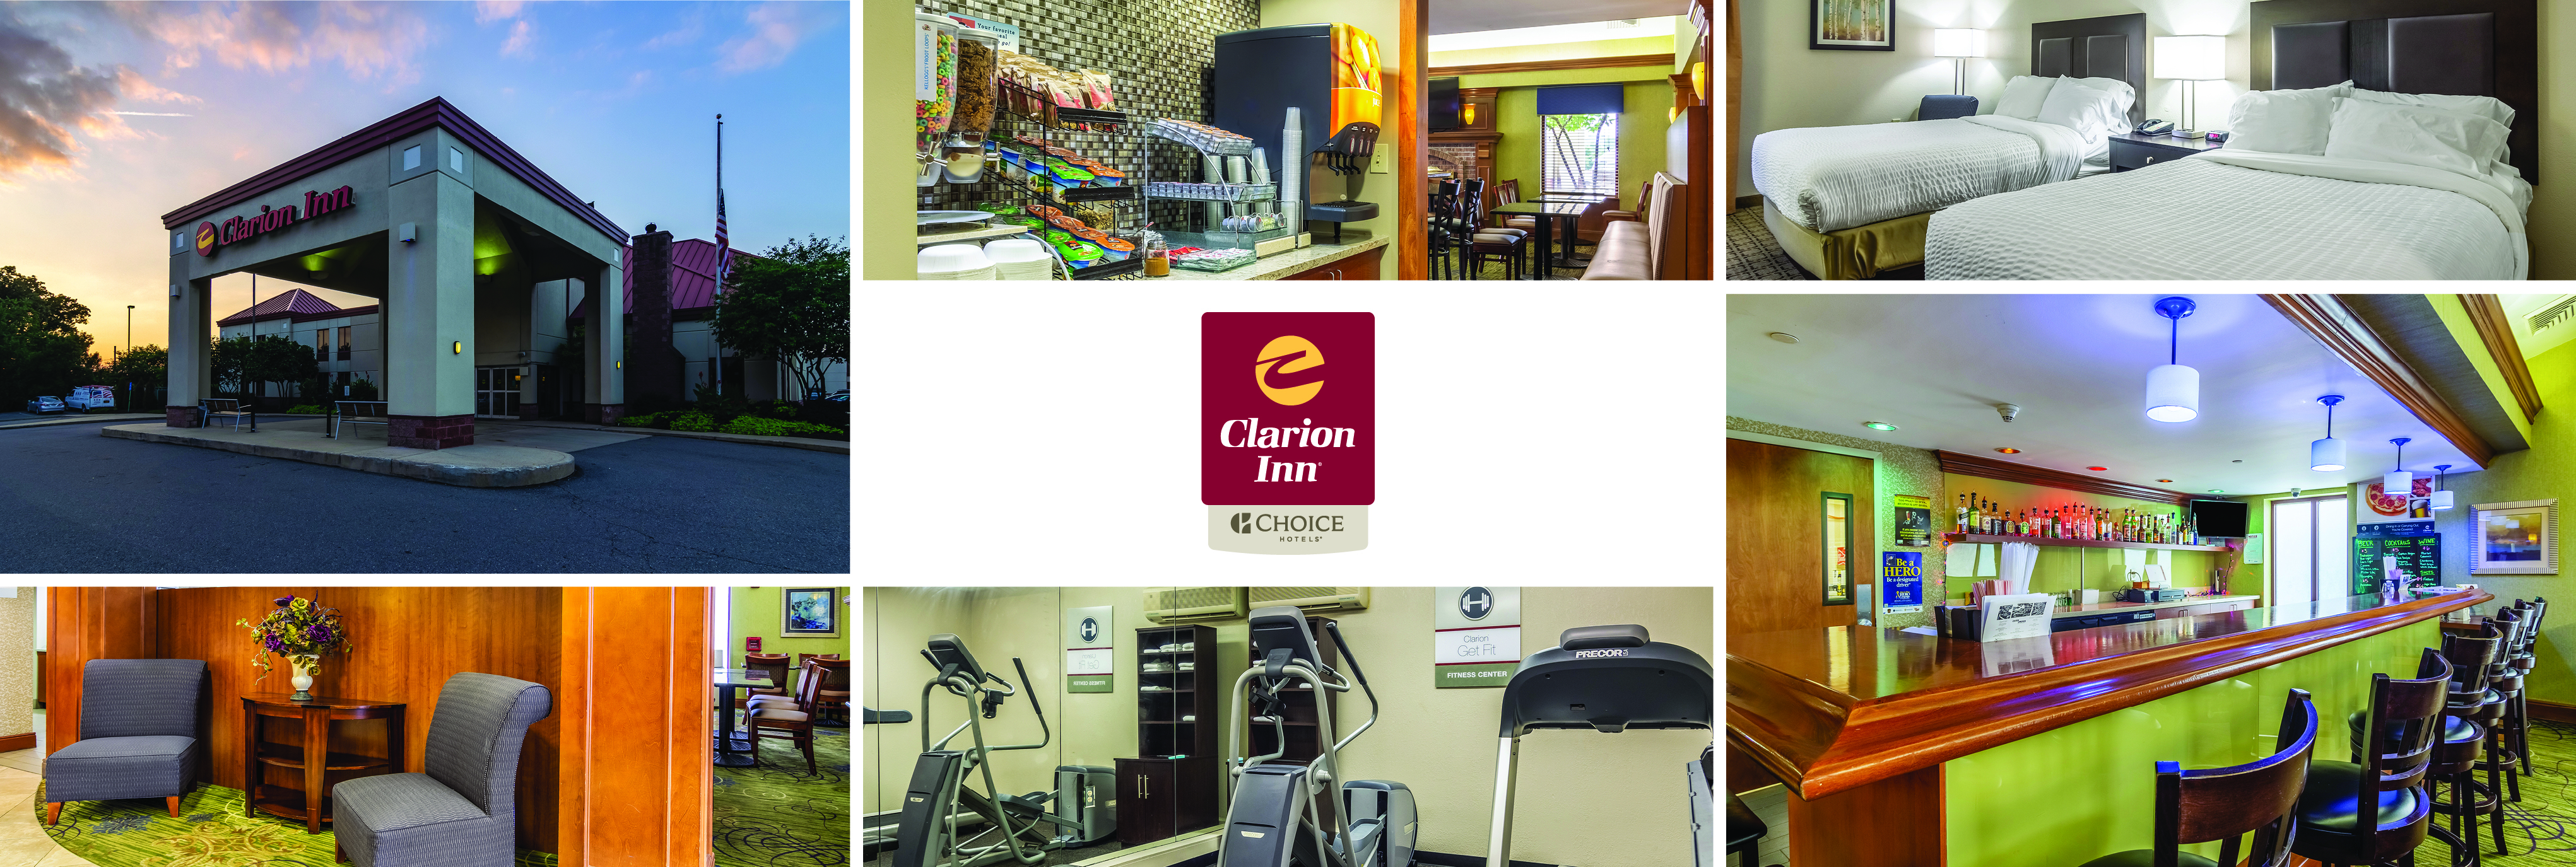 Hamister Group, LLC opens Clarion Inn Hotel in Cranberry Township, PA